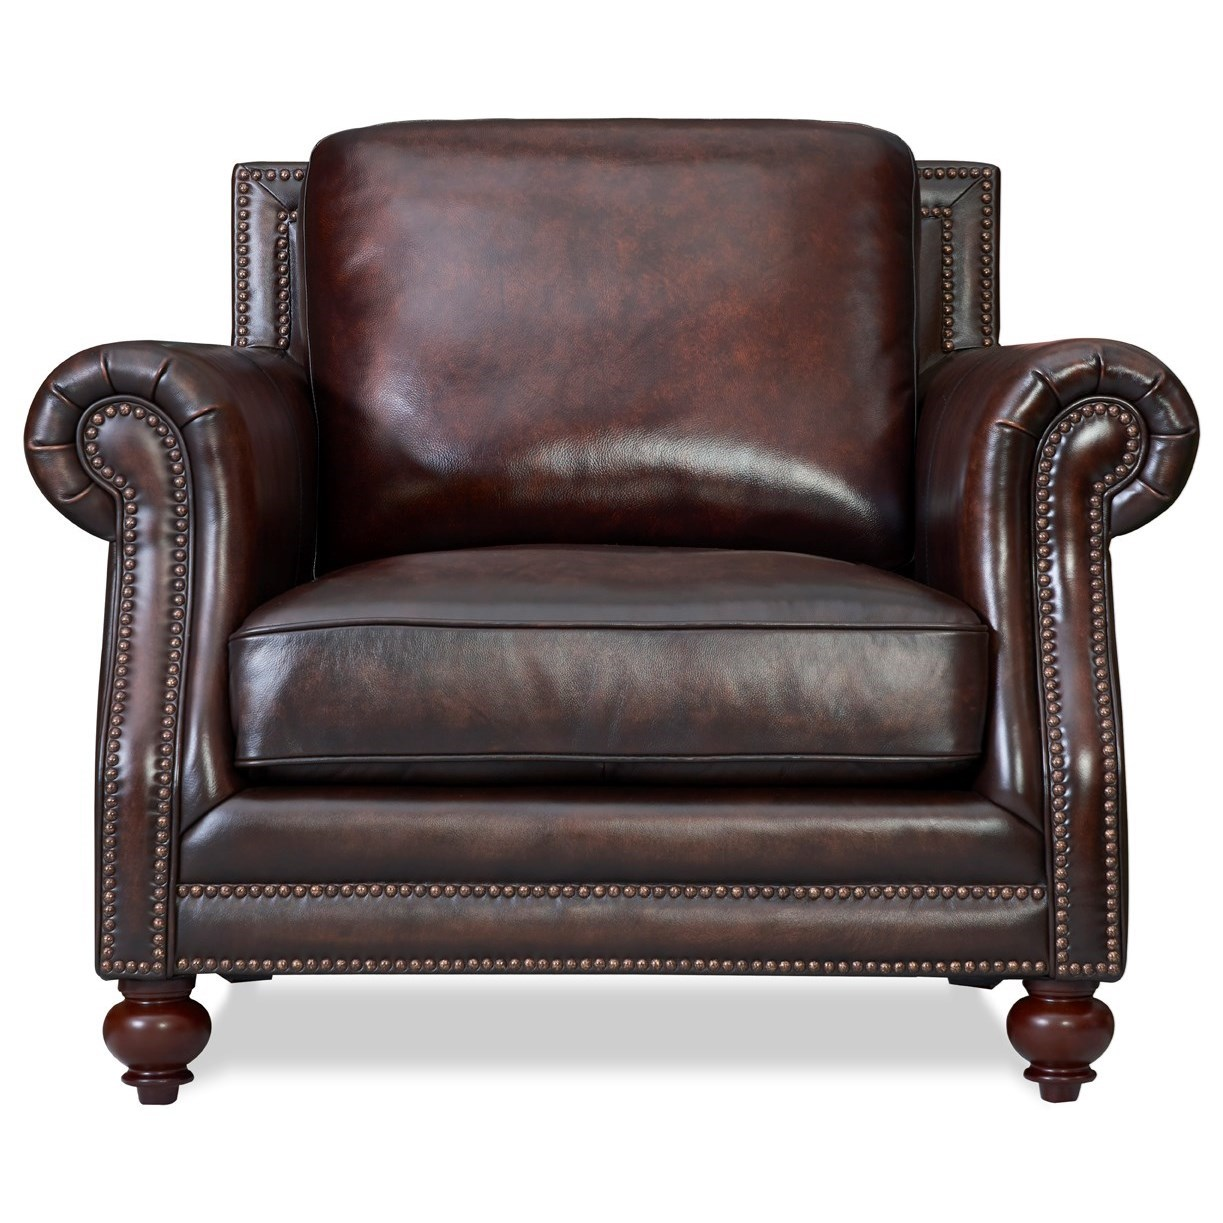 Dallas Chair by Leather Italia USA at Home Furnishings Direct